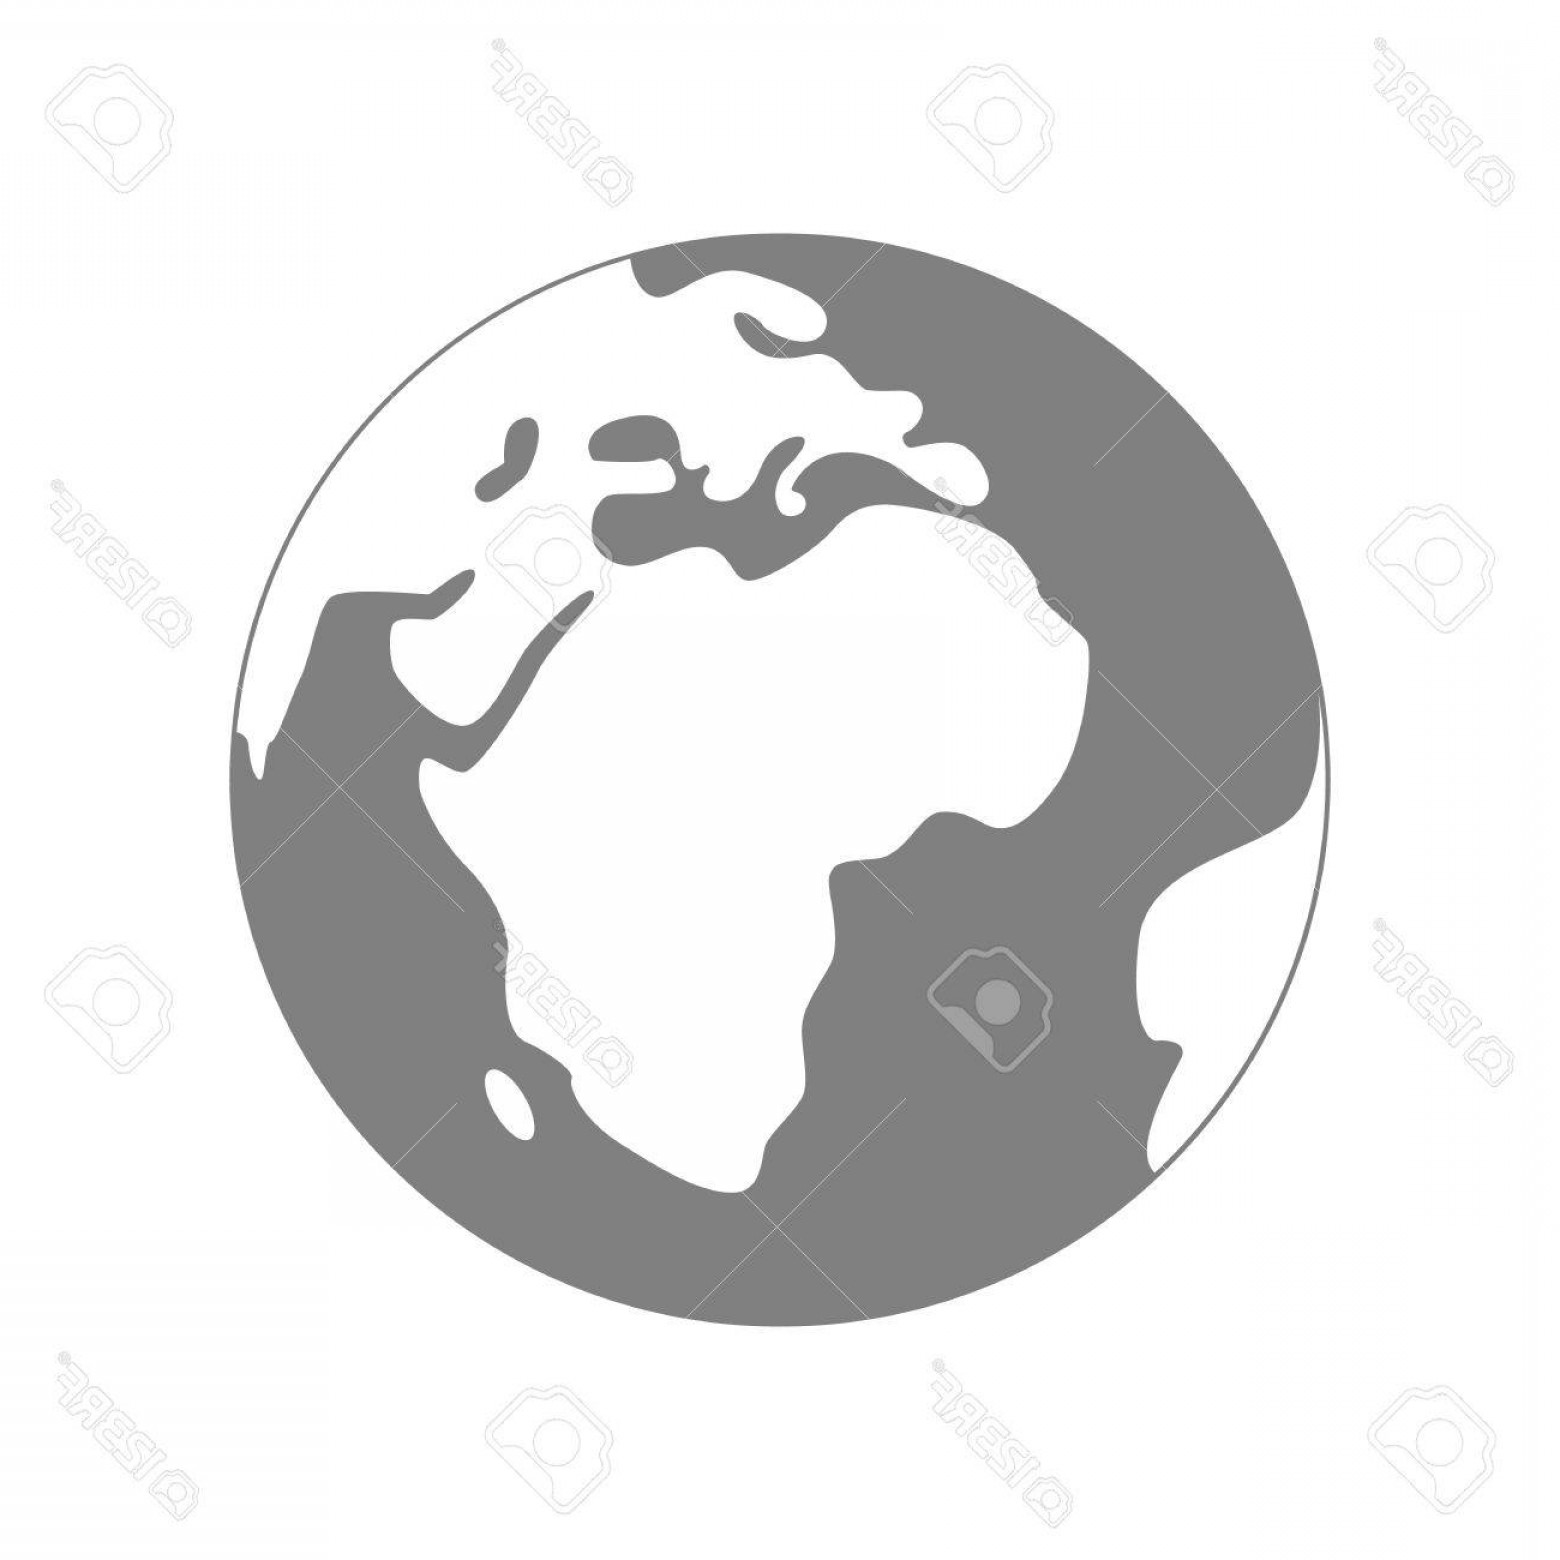 World Icon Vector Simple: Photostock Vector Isolated Planet Earth On White Background Simple Flat World Globe Icon In Grey And White Colors Trav